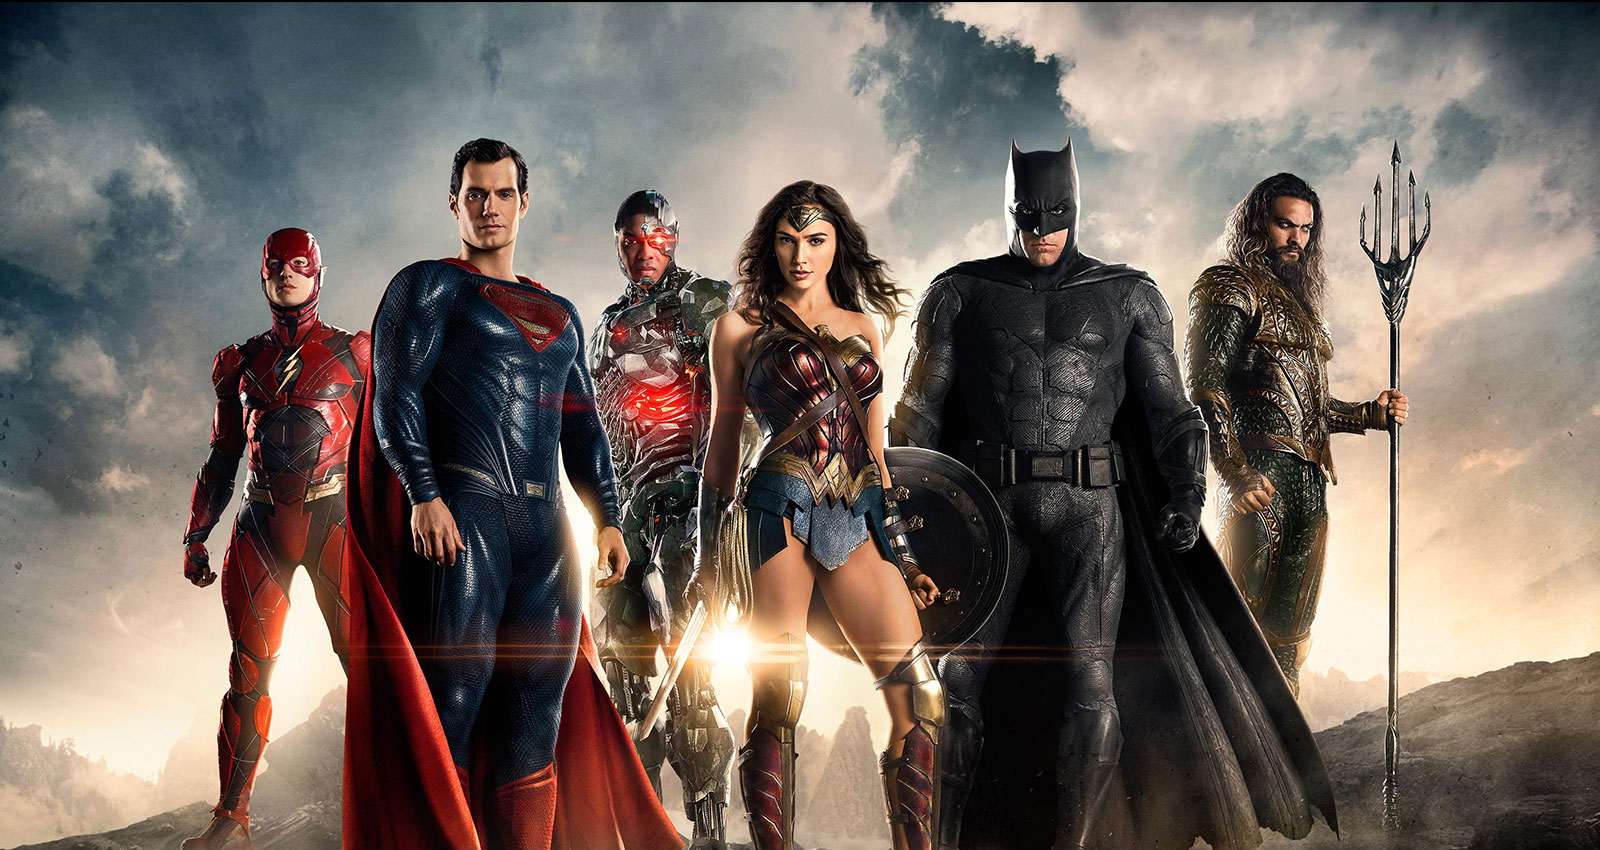 Justice-League Movies Coming This November: 10 Feature Films